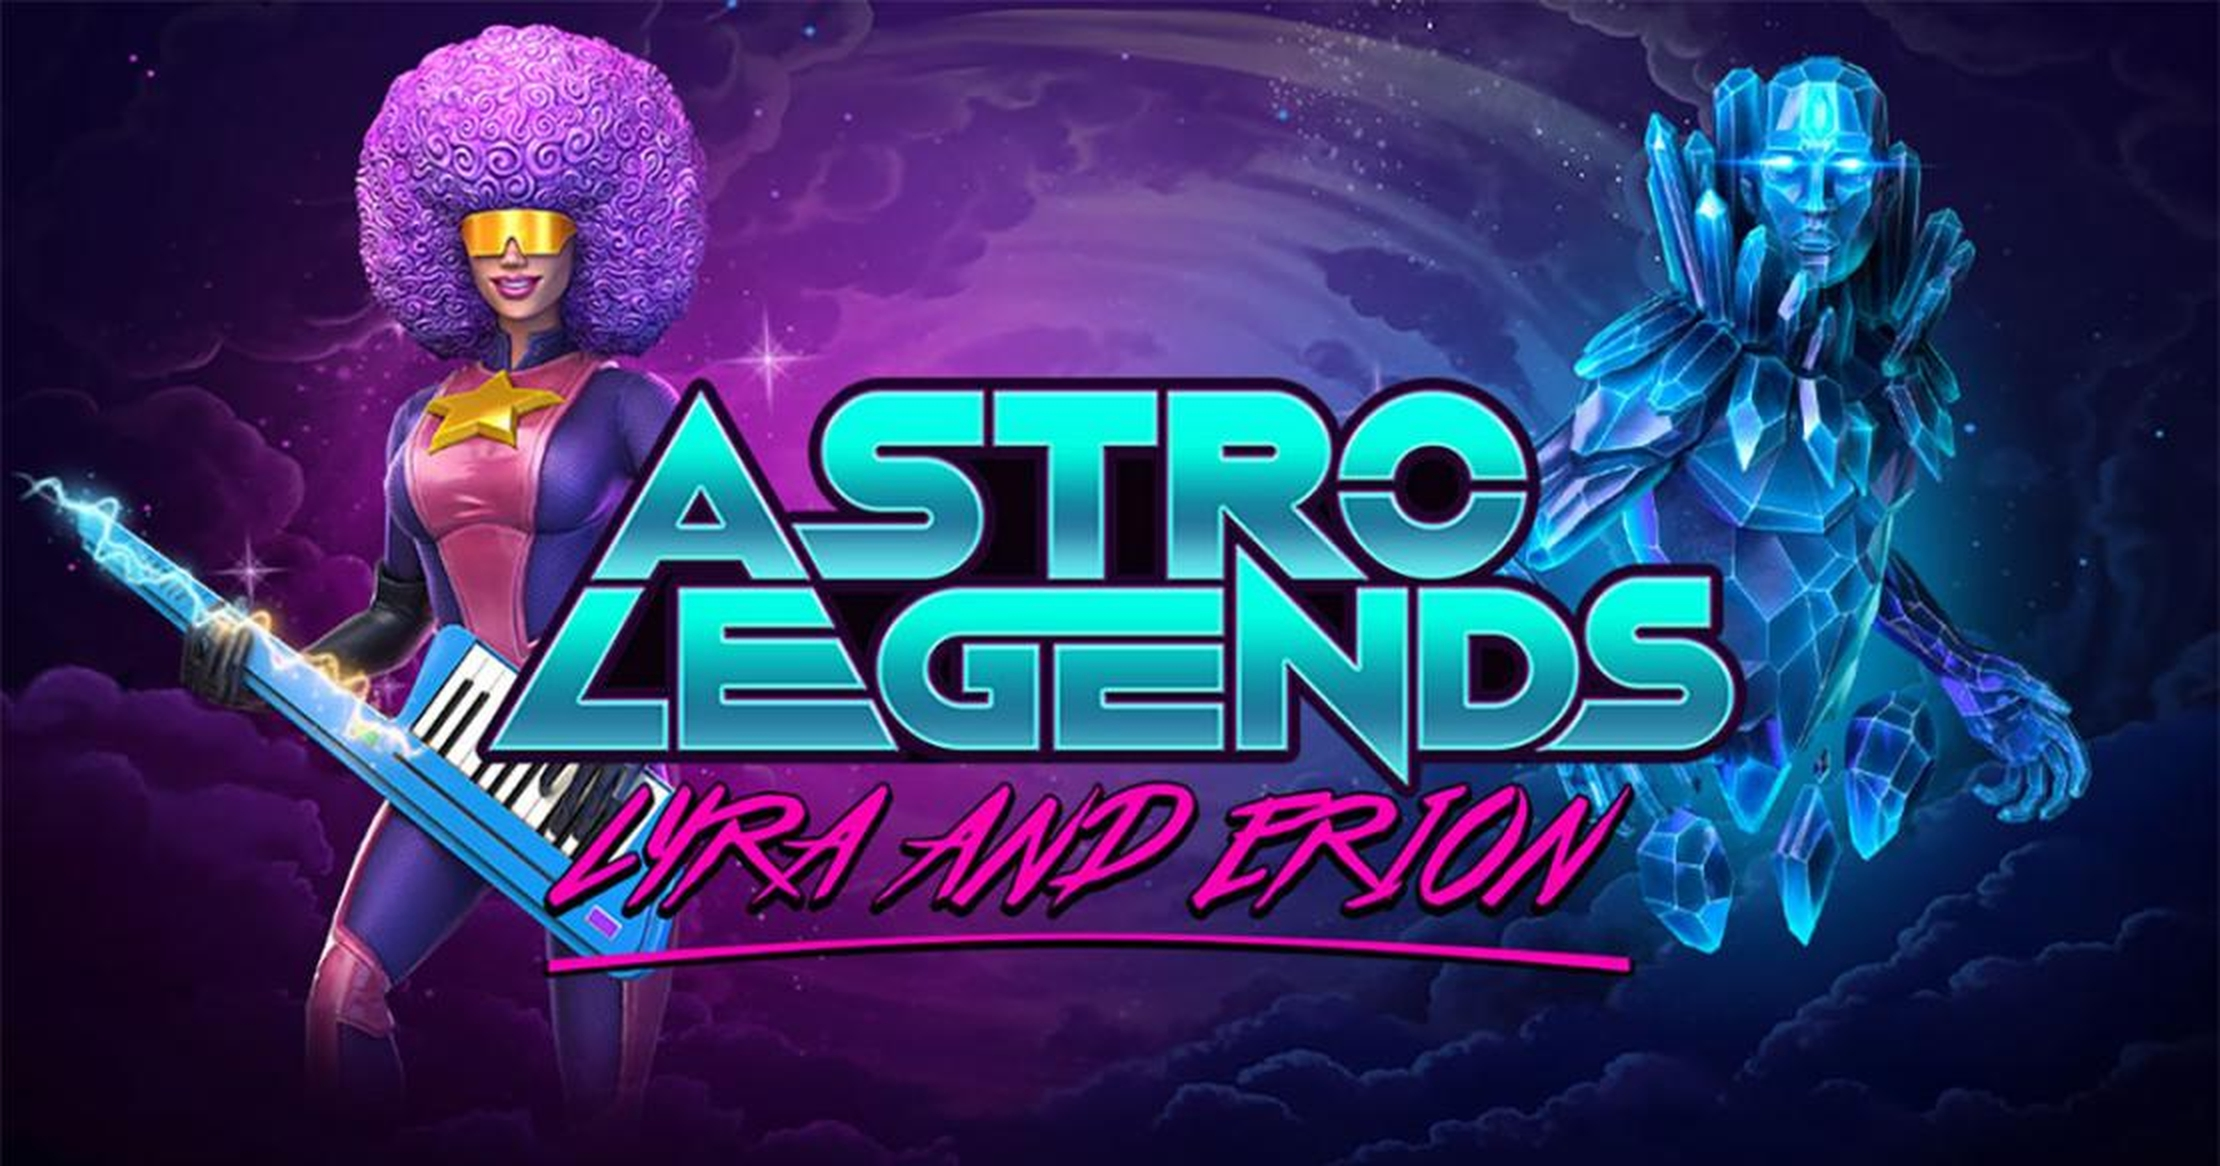 Se Astro Legends: Lyra and Erion Online Slot Demo Game, Foxium